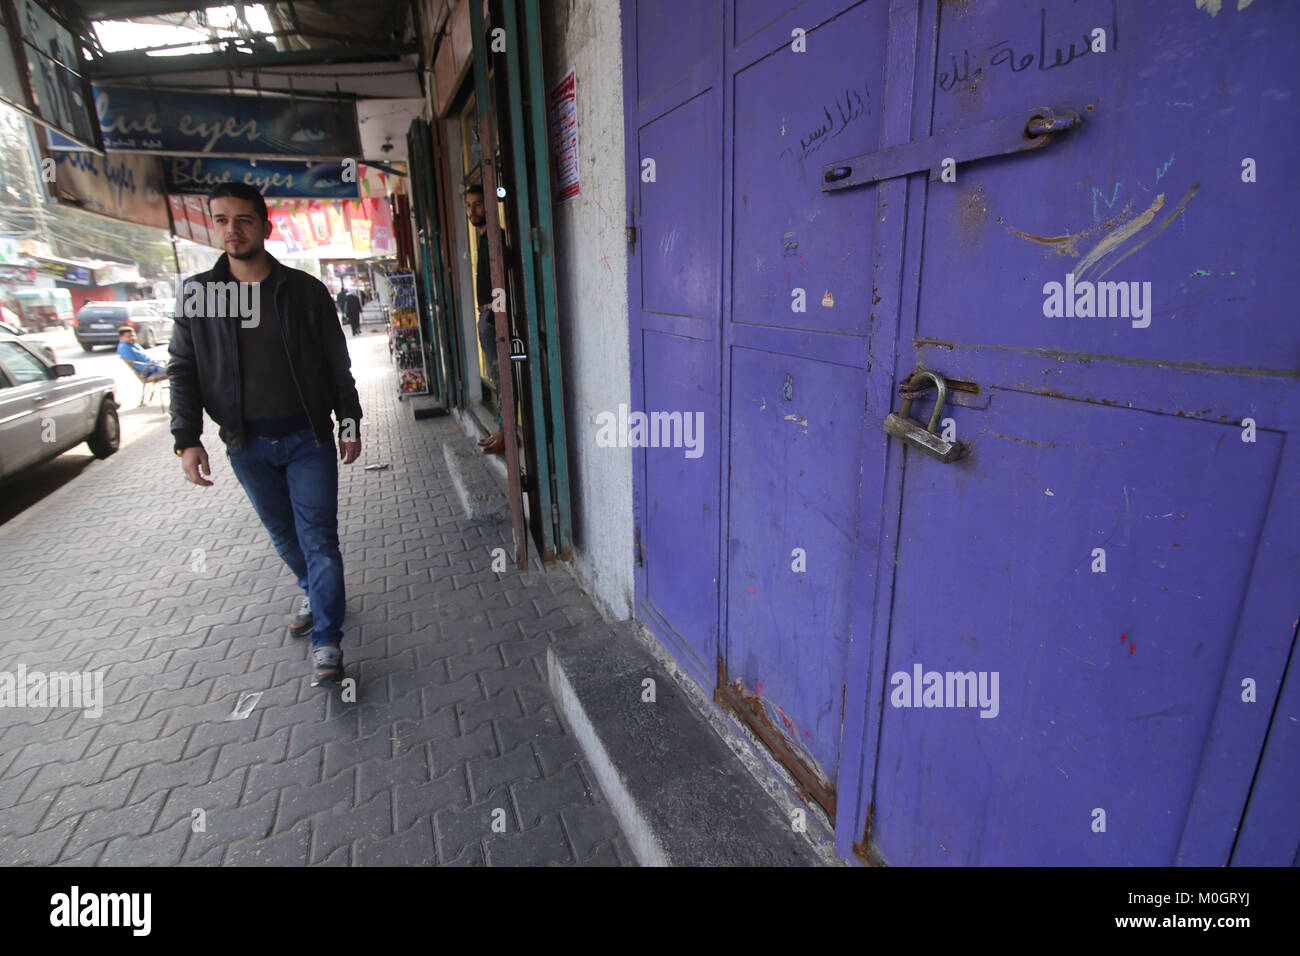 Gaza. 22nd Jan, 2018. A Palestinian passes by a closed bank in the